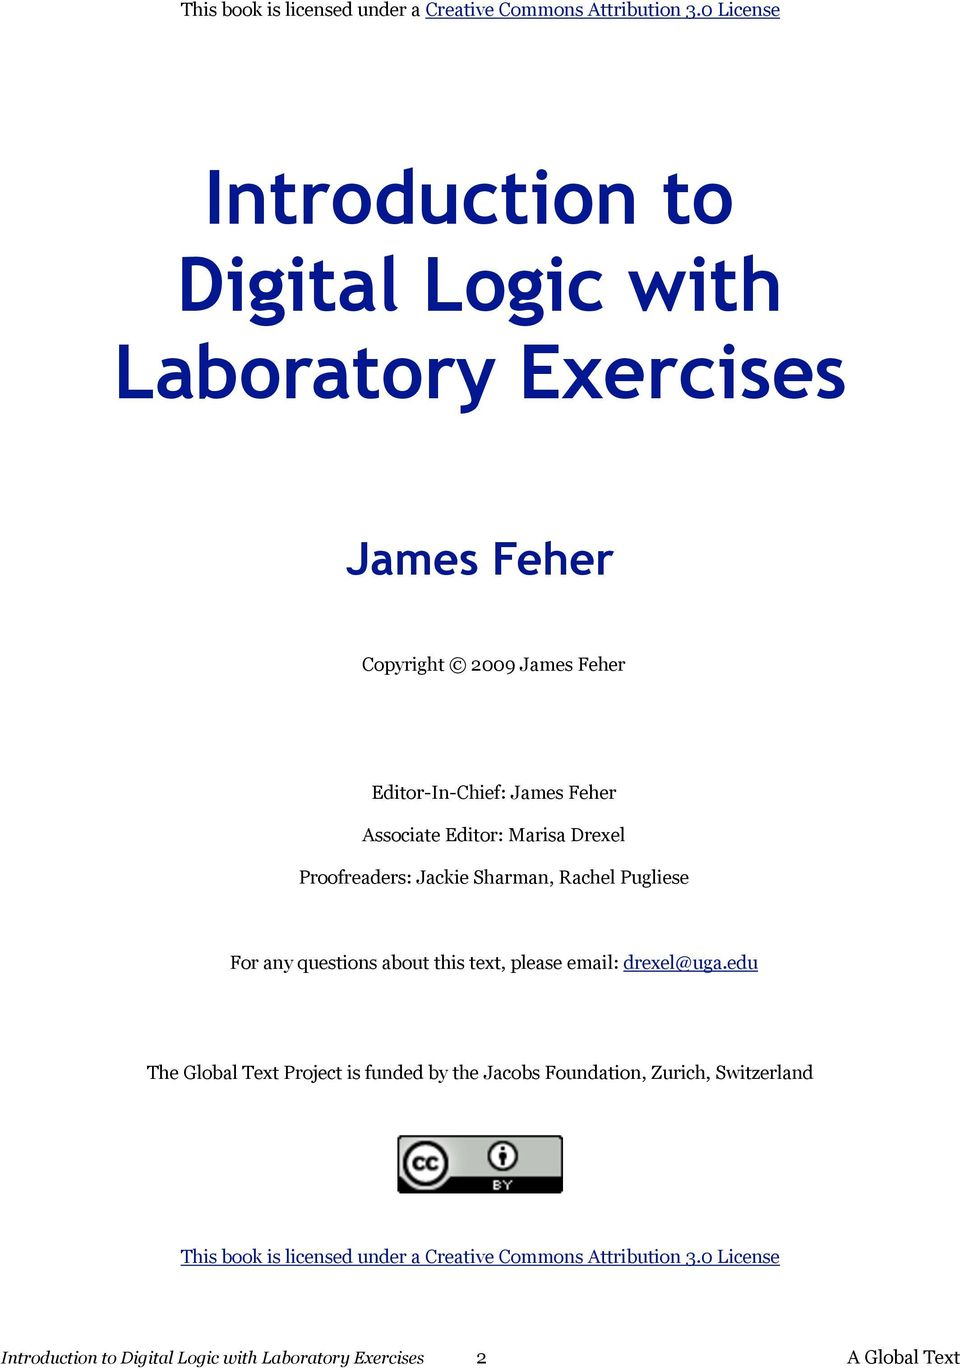 Introduction To Digital Logic With Laboratory Exercises Pdf Circuitlab 555 Bistable Circuit Email Drexeluga